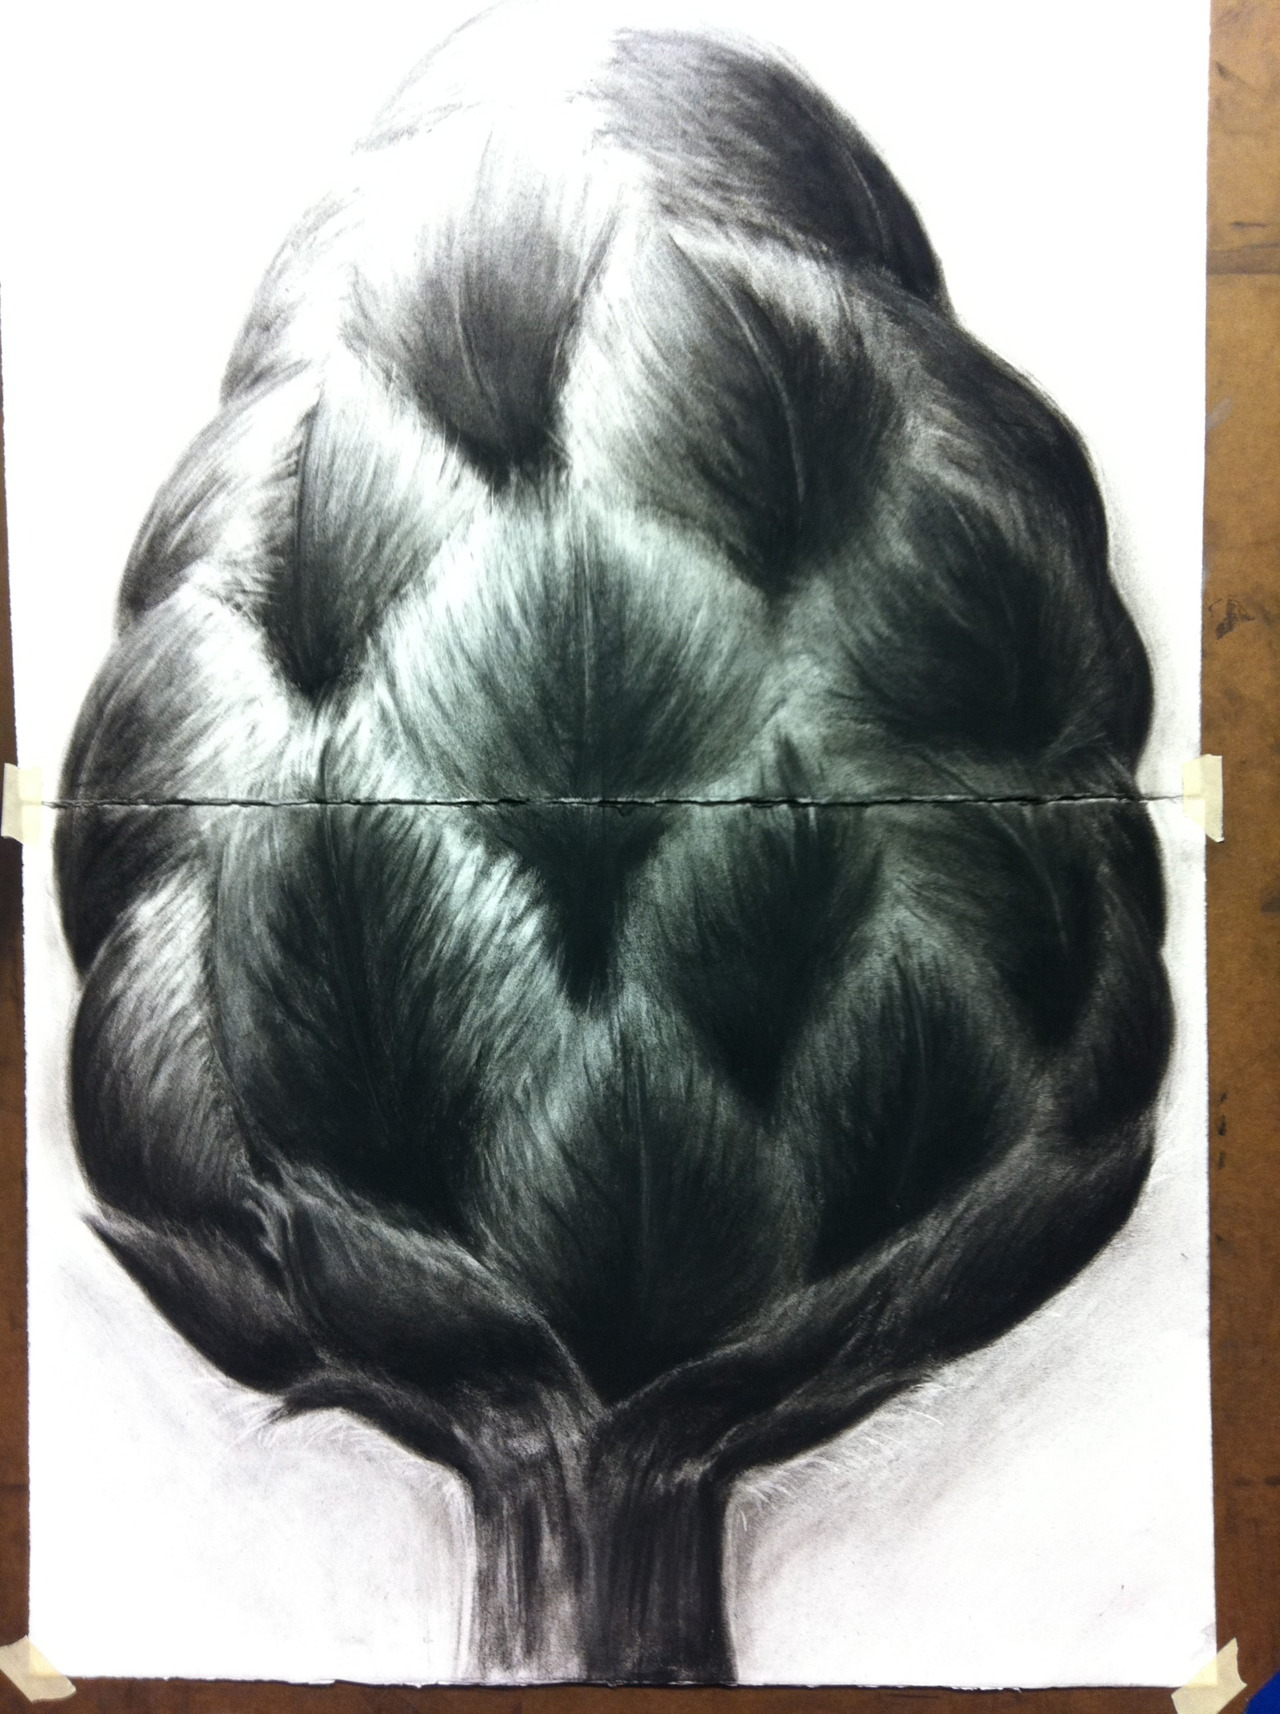 This is a charcoal piece I did in Drawing 1 last semester. Not really sure what it is, but we were told to interpret these botanical pictures. The figure this is based off was more spiky, but I changed it to a softer texture. This picture was taken from my phone so obviously it's not the best quality.